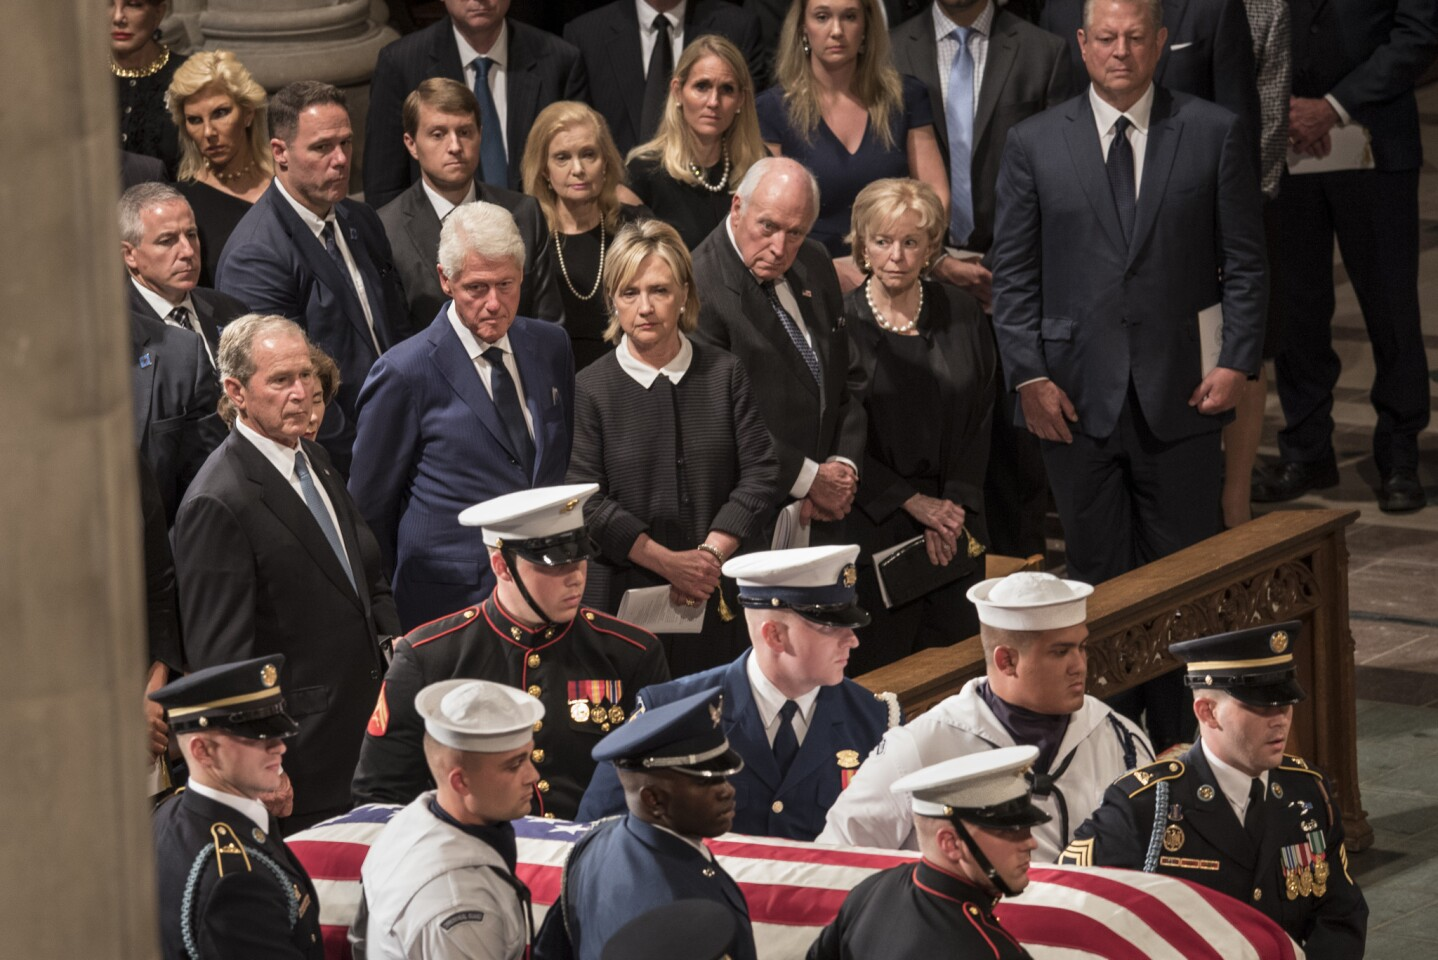 Former Presidents George W. Bush and Bill Clinton, former Secretary of State Hillary Clinton, former Vice President Dick Cheney and Lynne Cheney at the memorial service for Sen. John McCain on Saturday at the Washington National Cathedral.